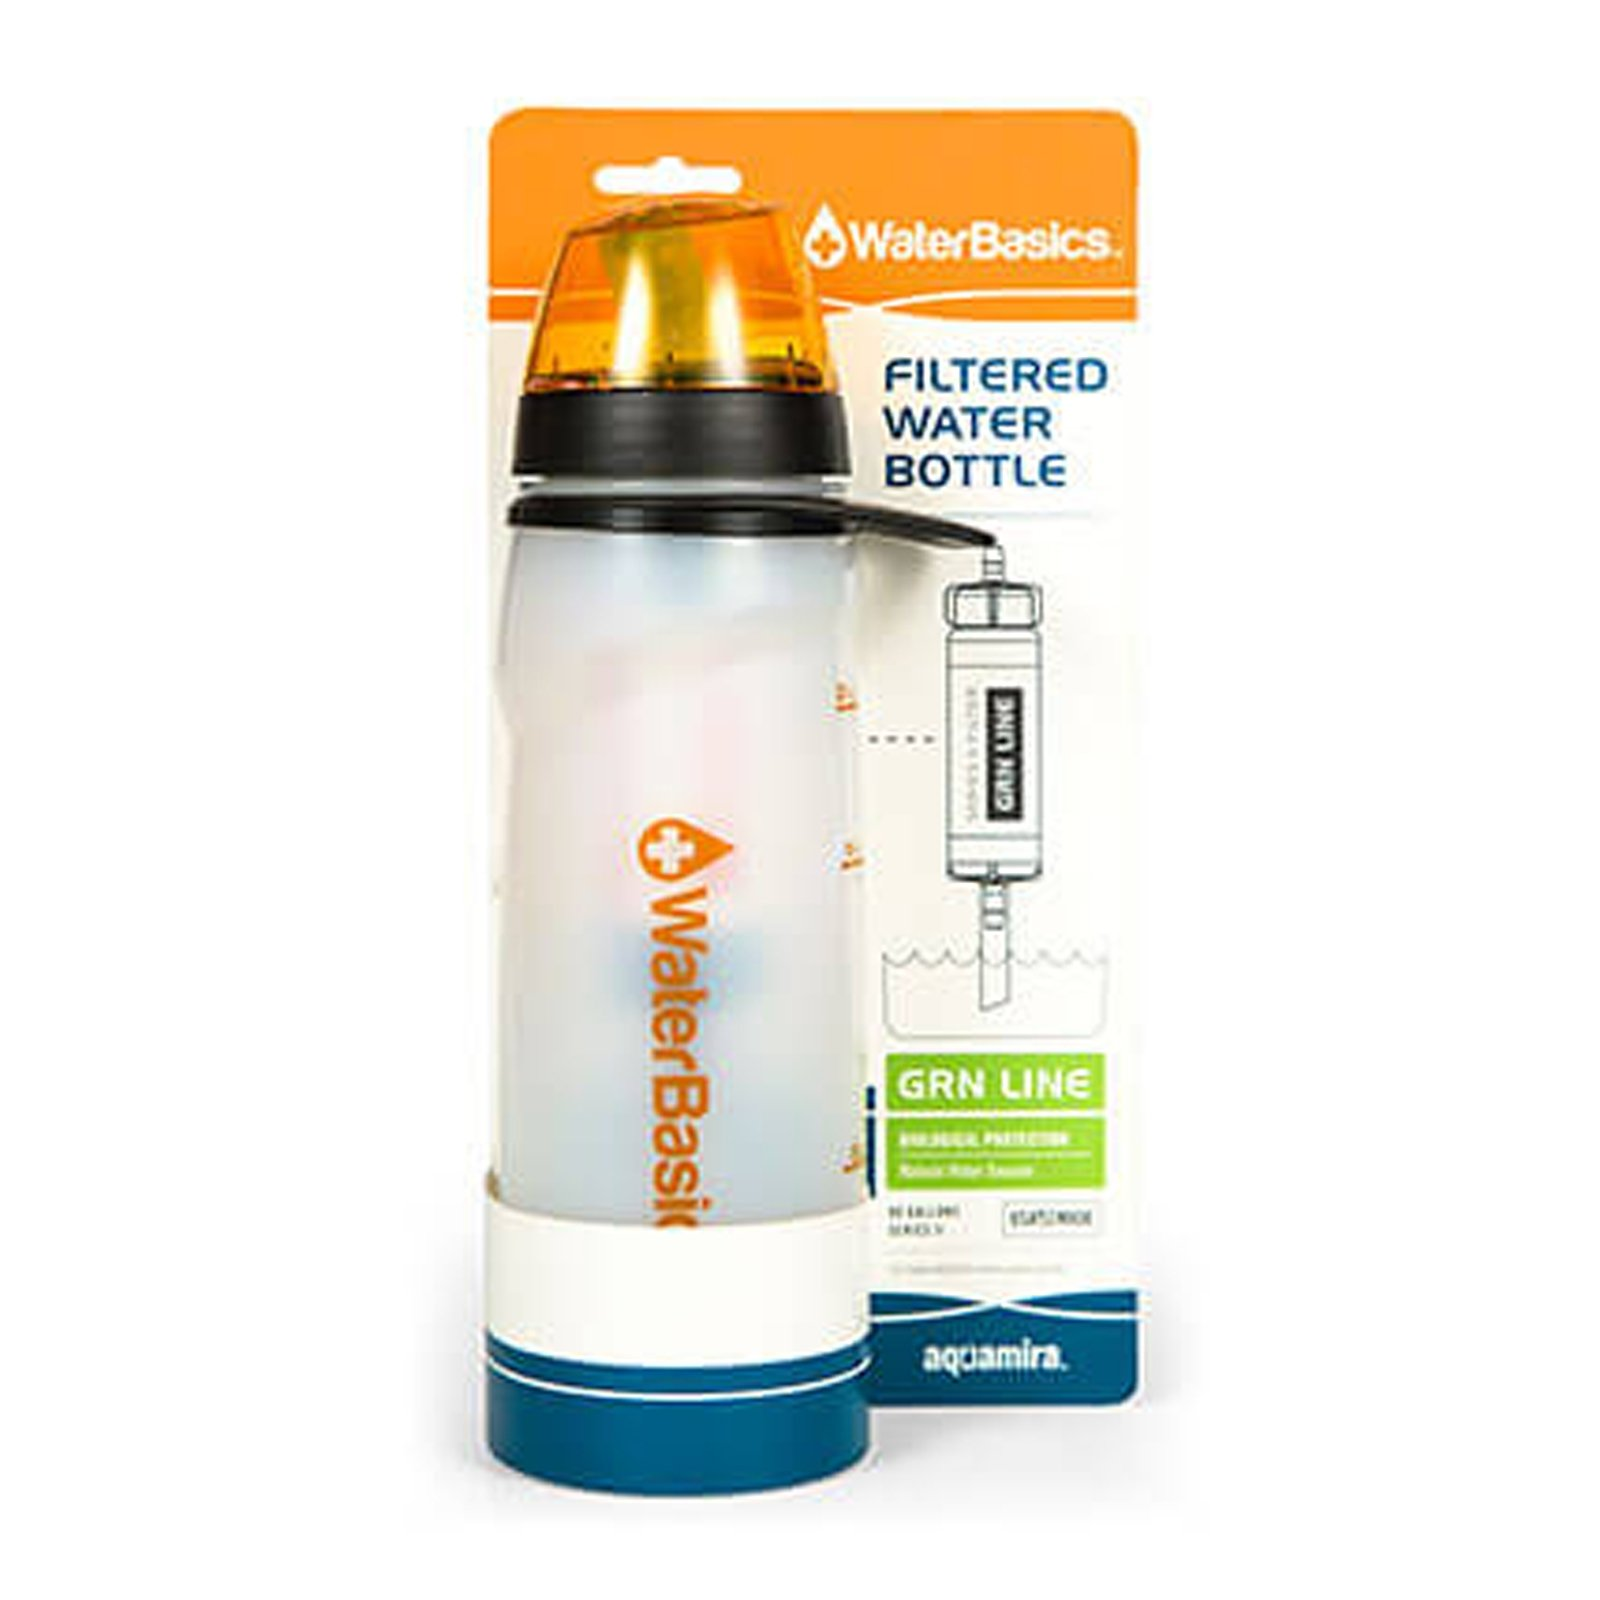 Aquamira Water Filter 20 Ounce Bottle with GRN Line Protection